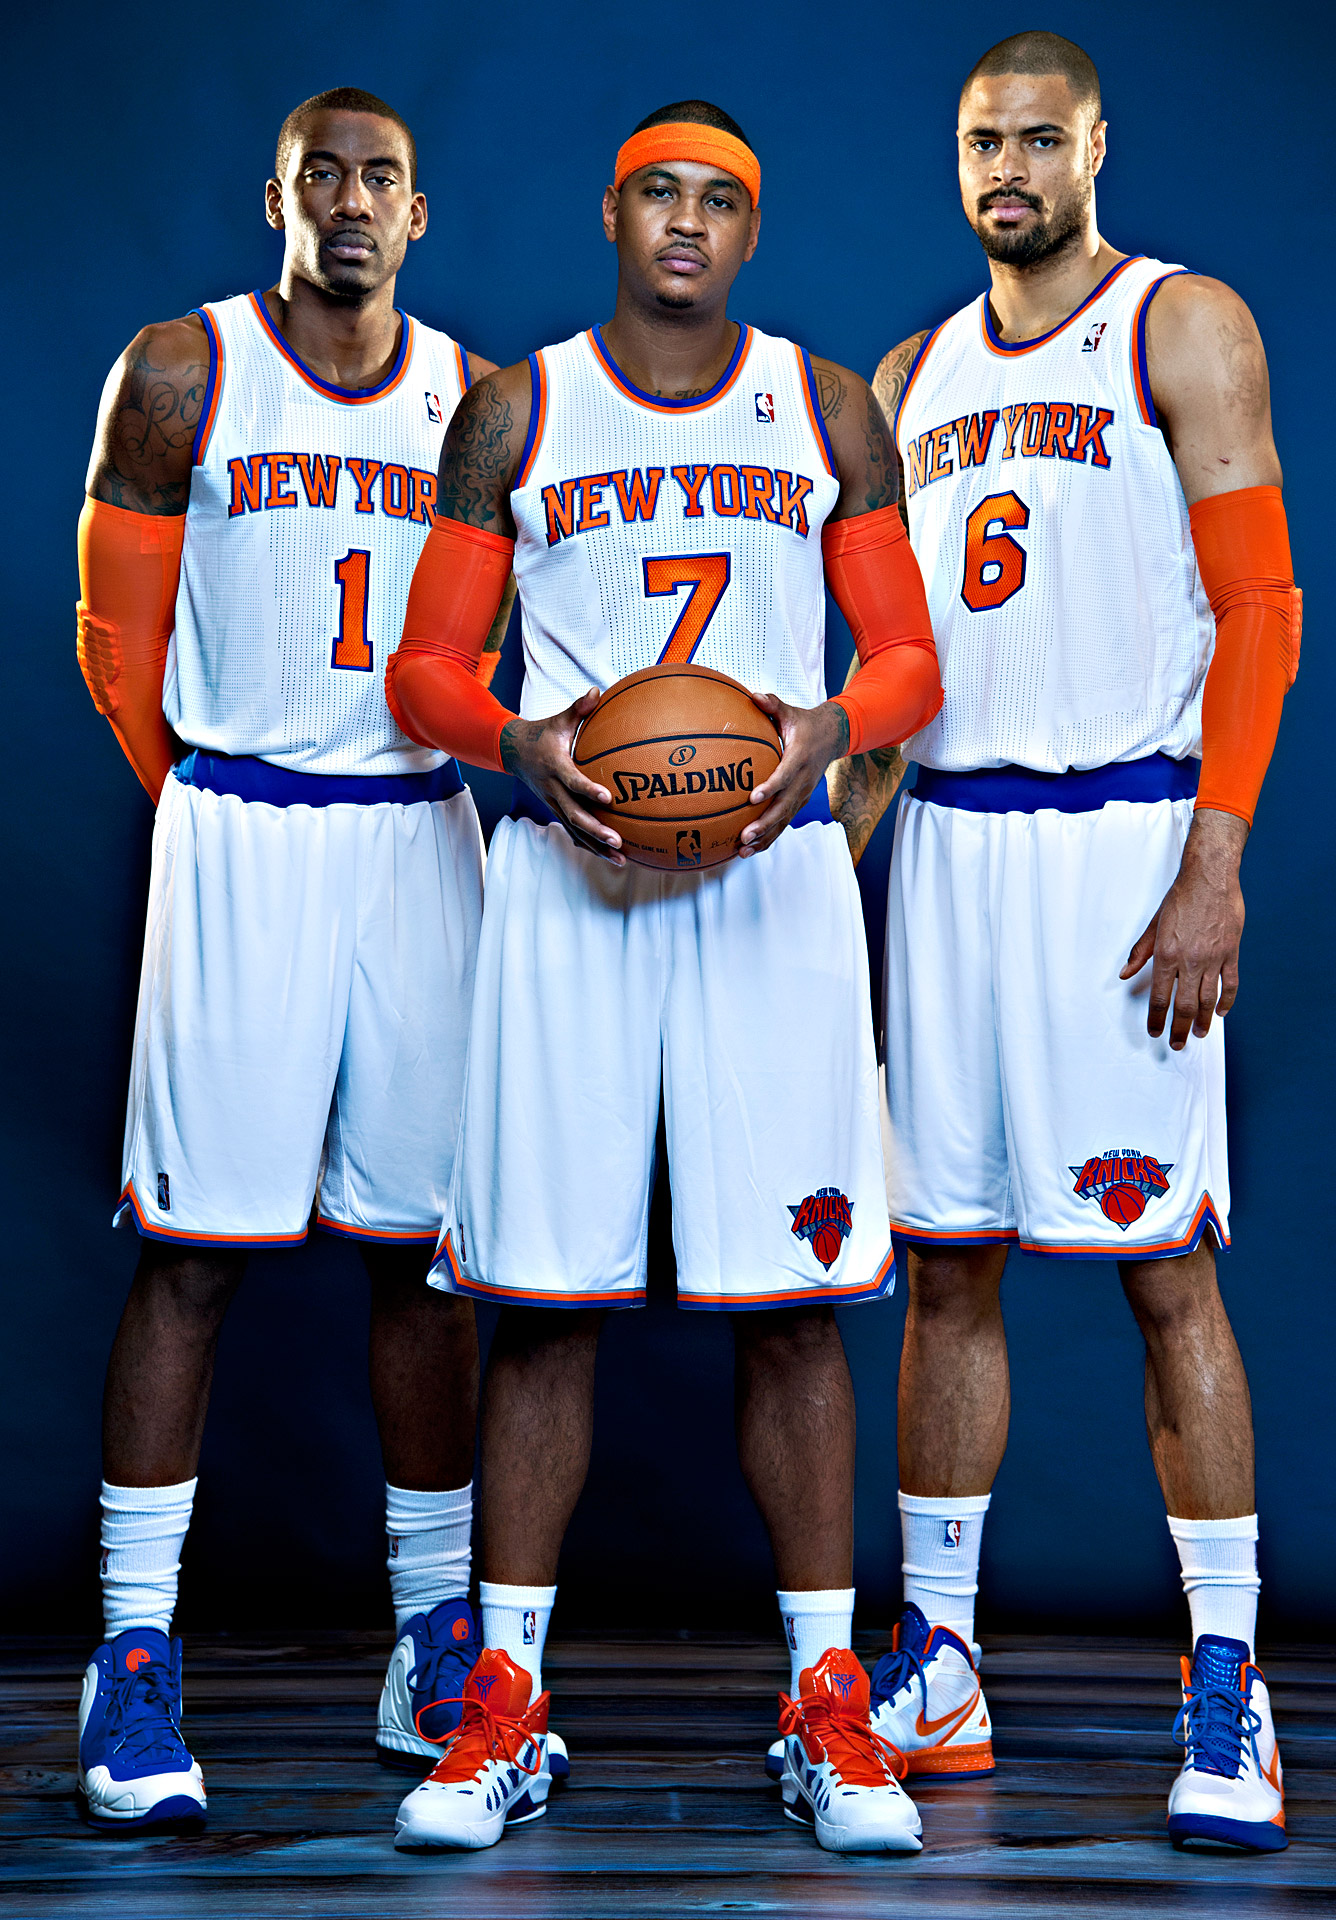 Amar'e Stoudemire, Carmelo Anthony and Tyson Chandler